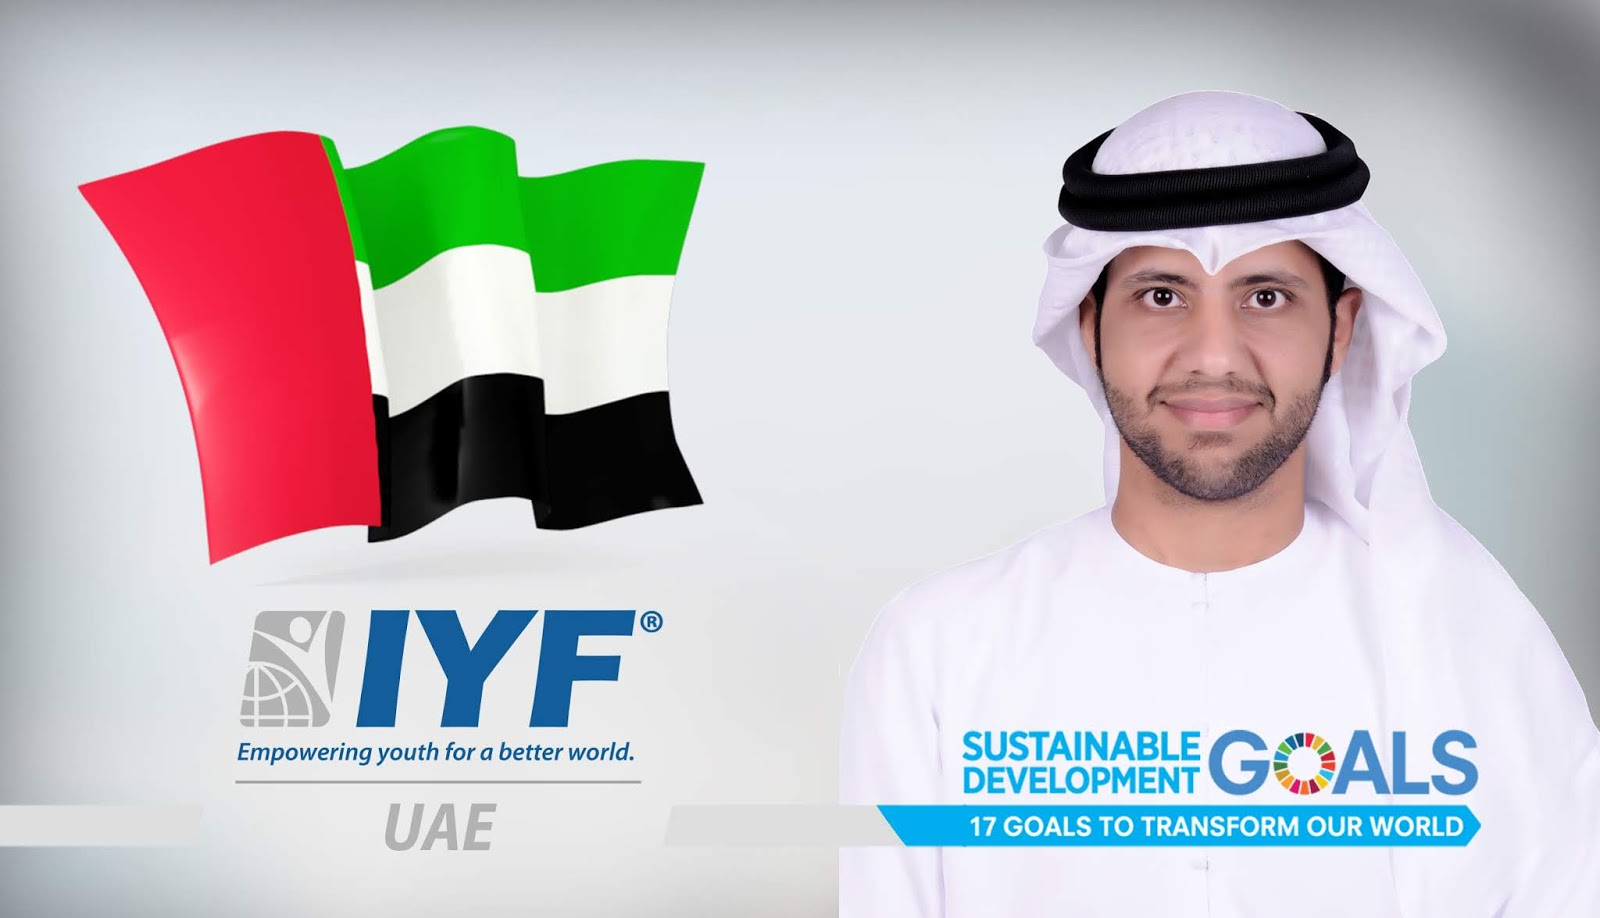 Mohamed Al Shateri, IYF Representative in UAE